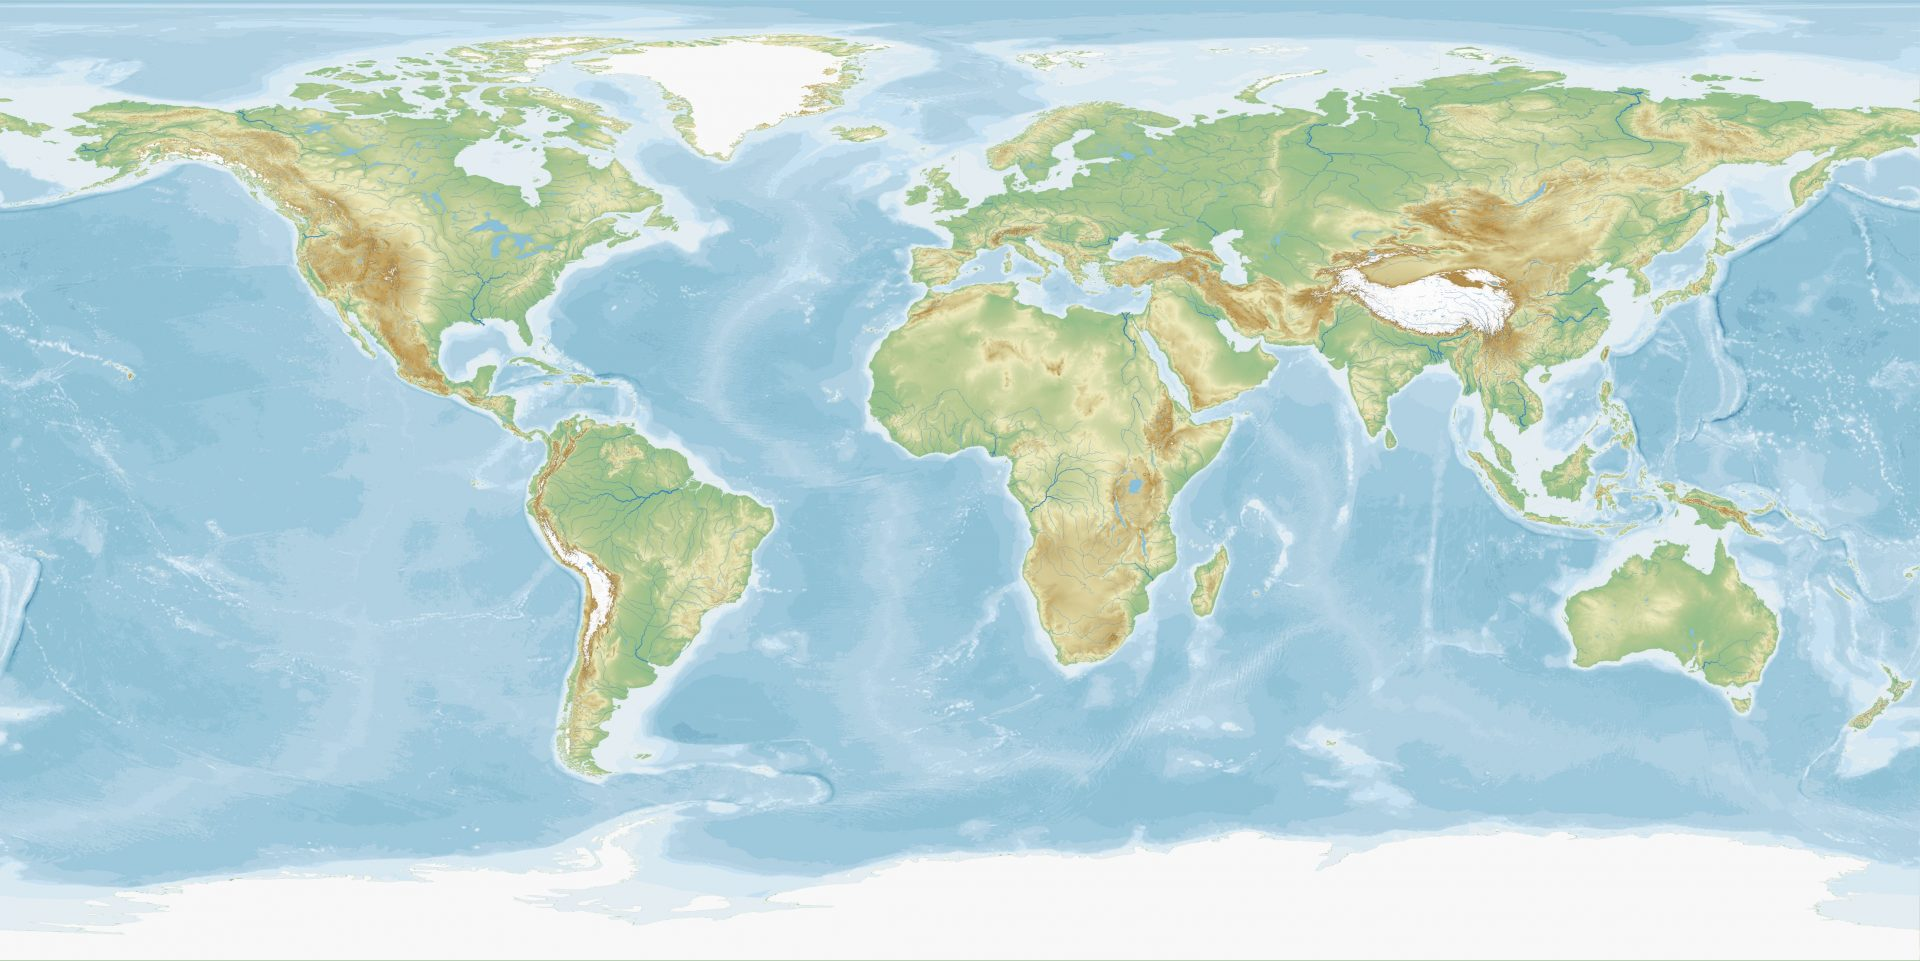 Equirectangular map of the world